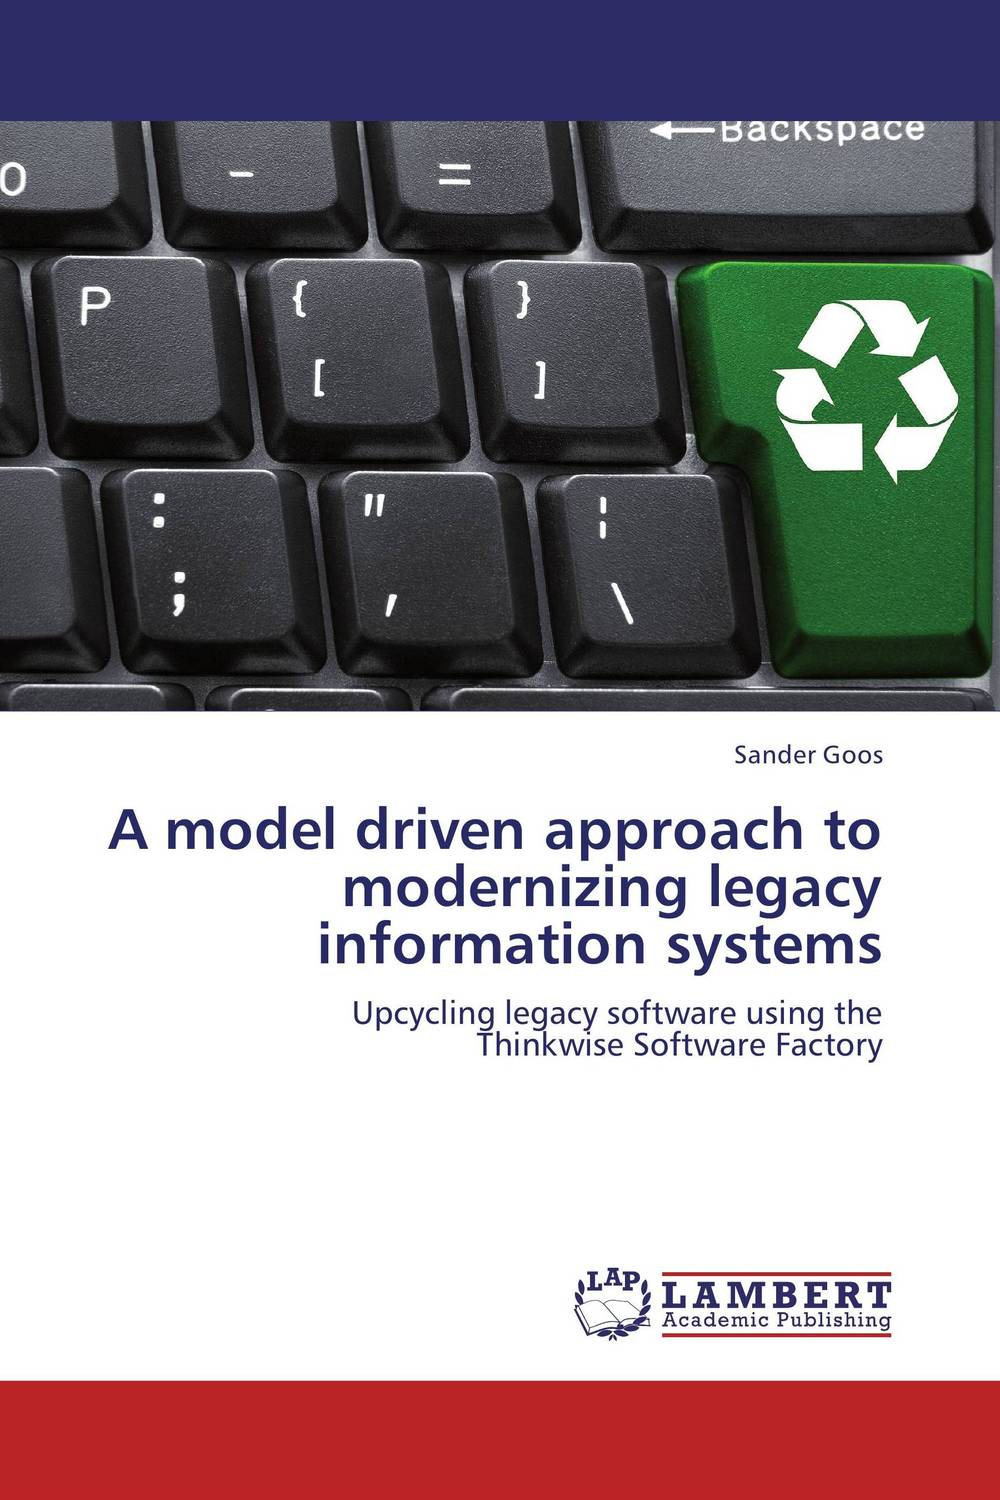 A model driven approach to modernizing legacy information systems peter stone layered learning in multiagent systems – a winning approach to robotic soccer